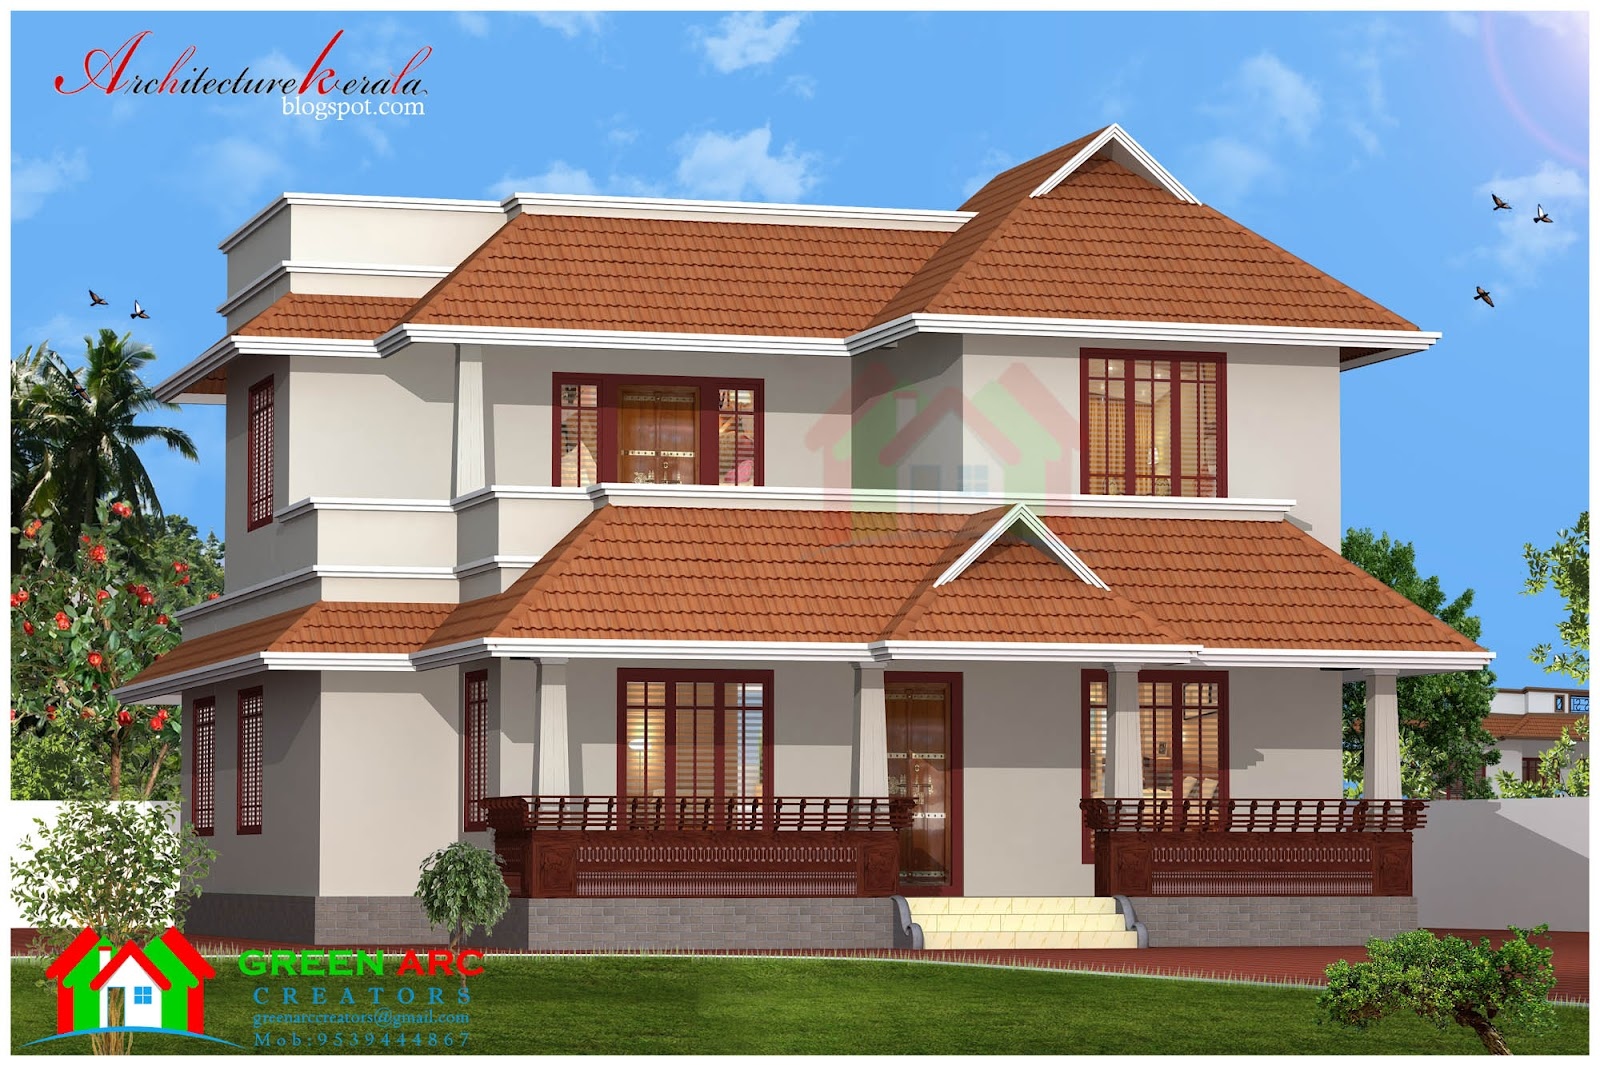 Architecture kerala traditional style kerala house plan for Kerala style home designs and elevations